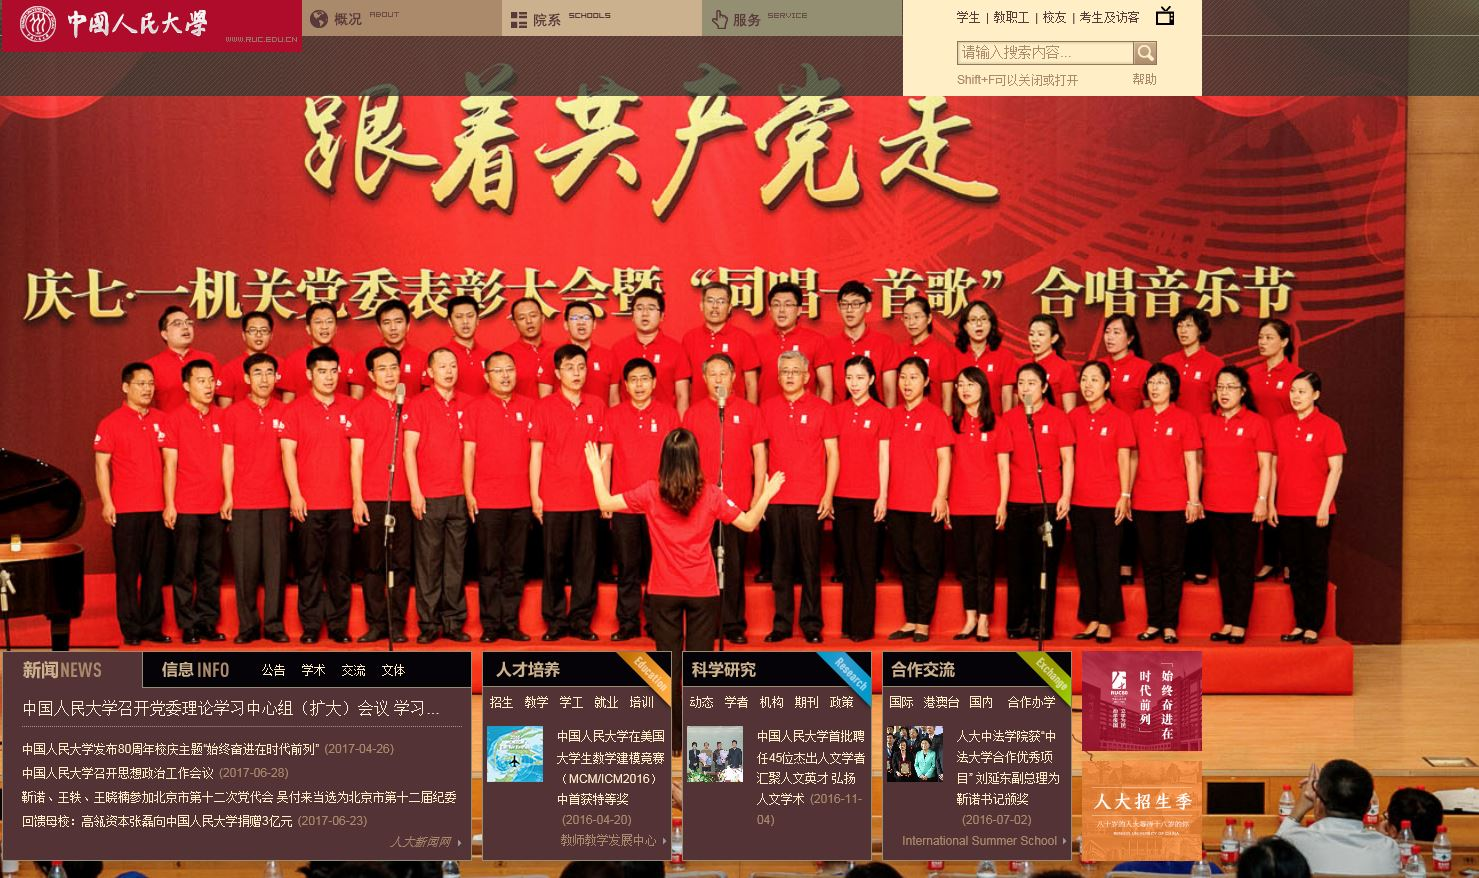 中国人民大学 | RENMIN UNIVERSITY of CHINA